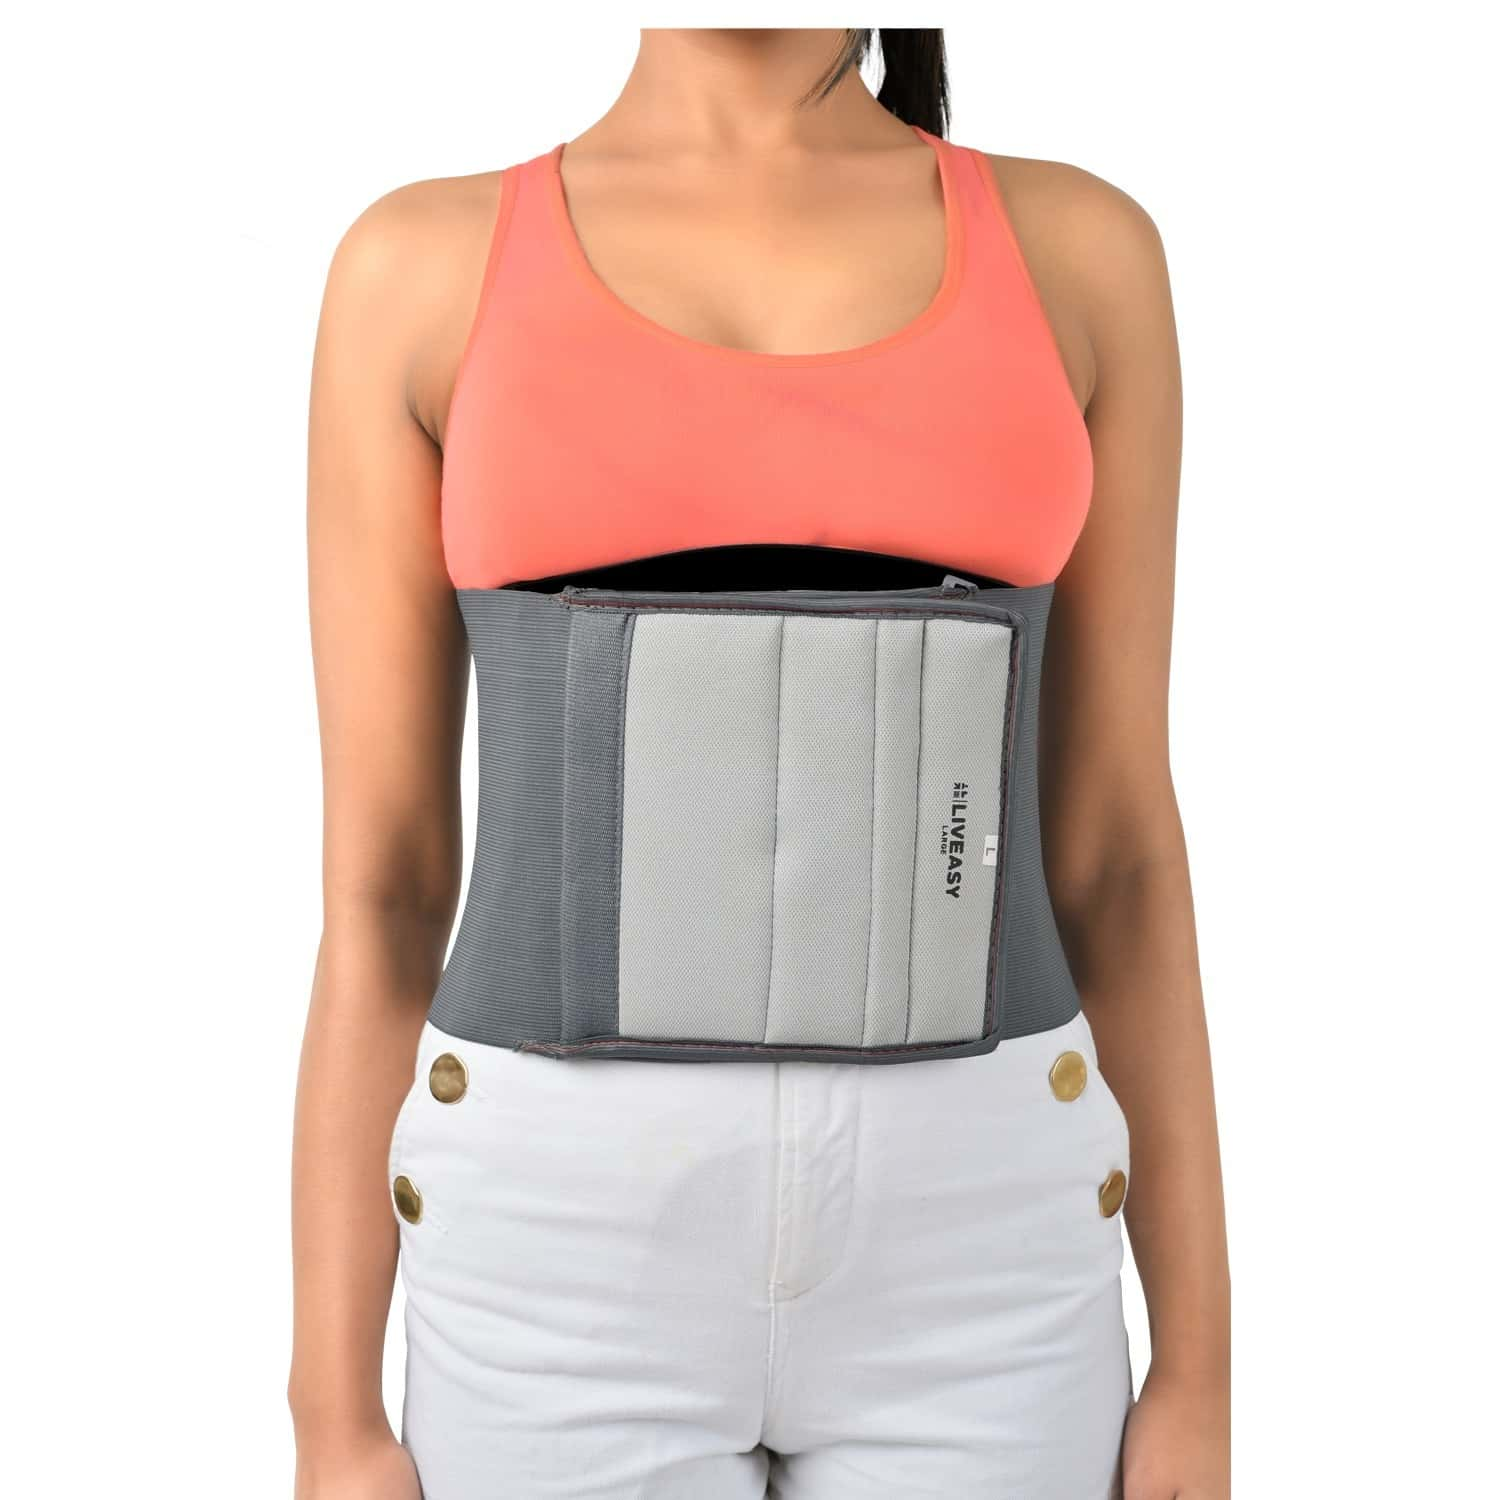 Liveasy Waist Trimmer Grey Color- Small Size